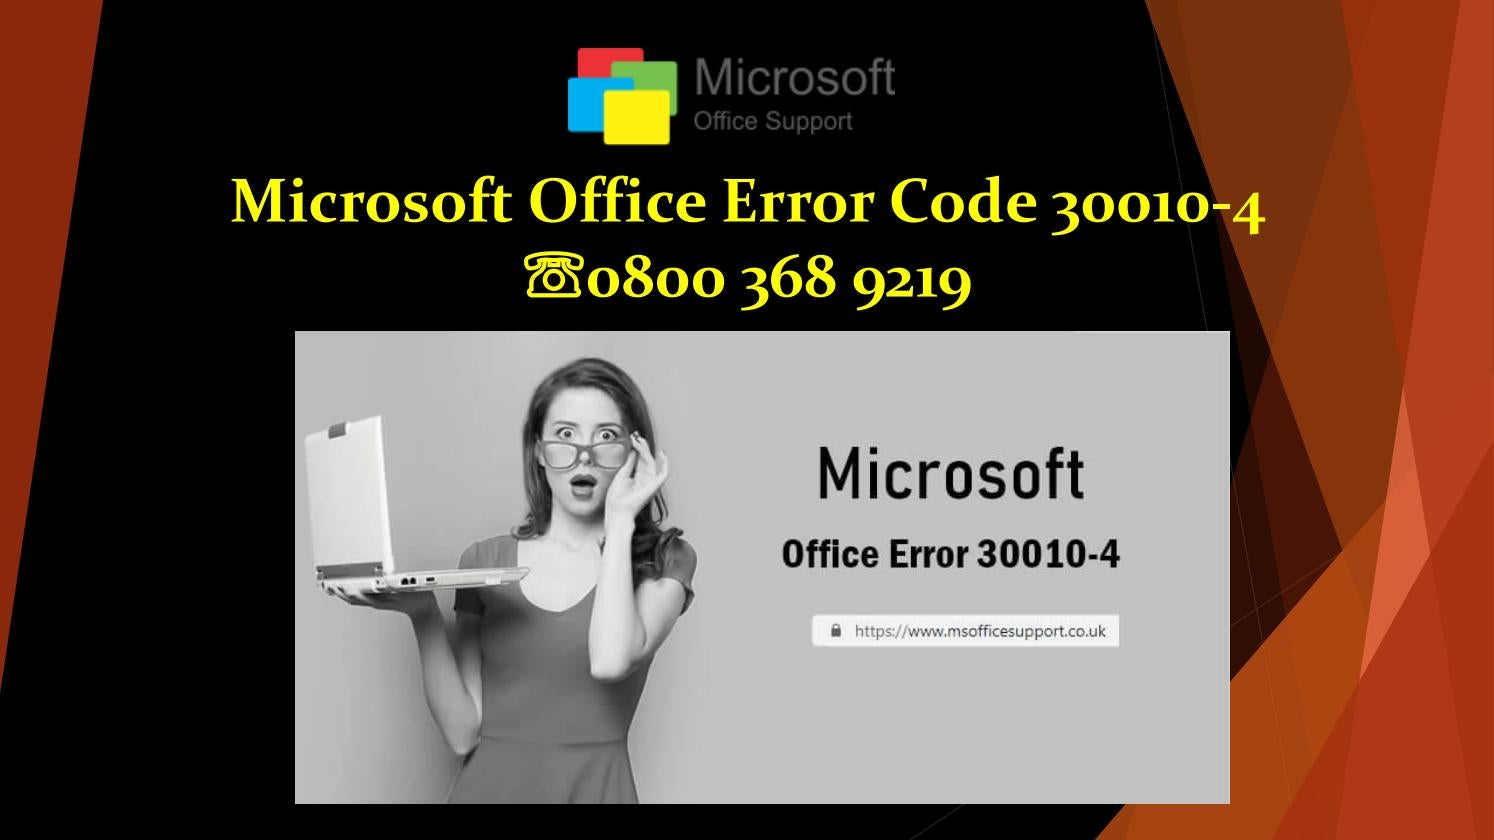 How to Solve Microsoft Office Error Code 30010-4 by viewyourpoint